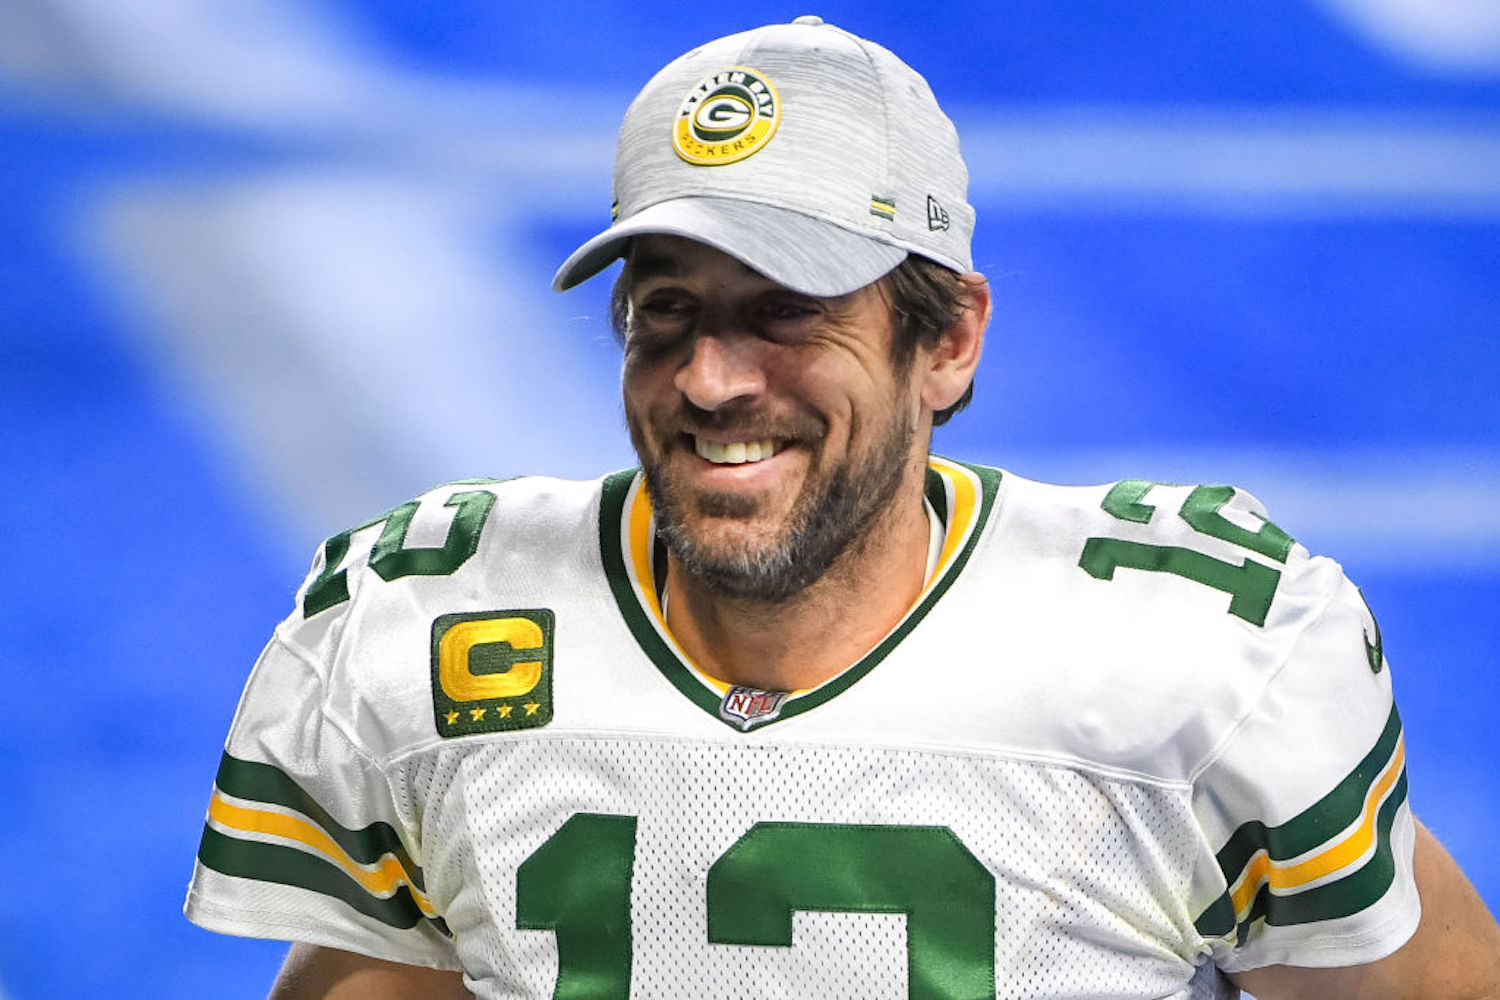 Packers QB Aaron Rodgers recently teamed up with Dave Portnoy and Barstool Sports to send a $500,000 lifeline to small businesses.